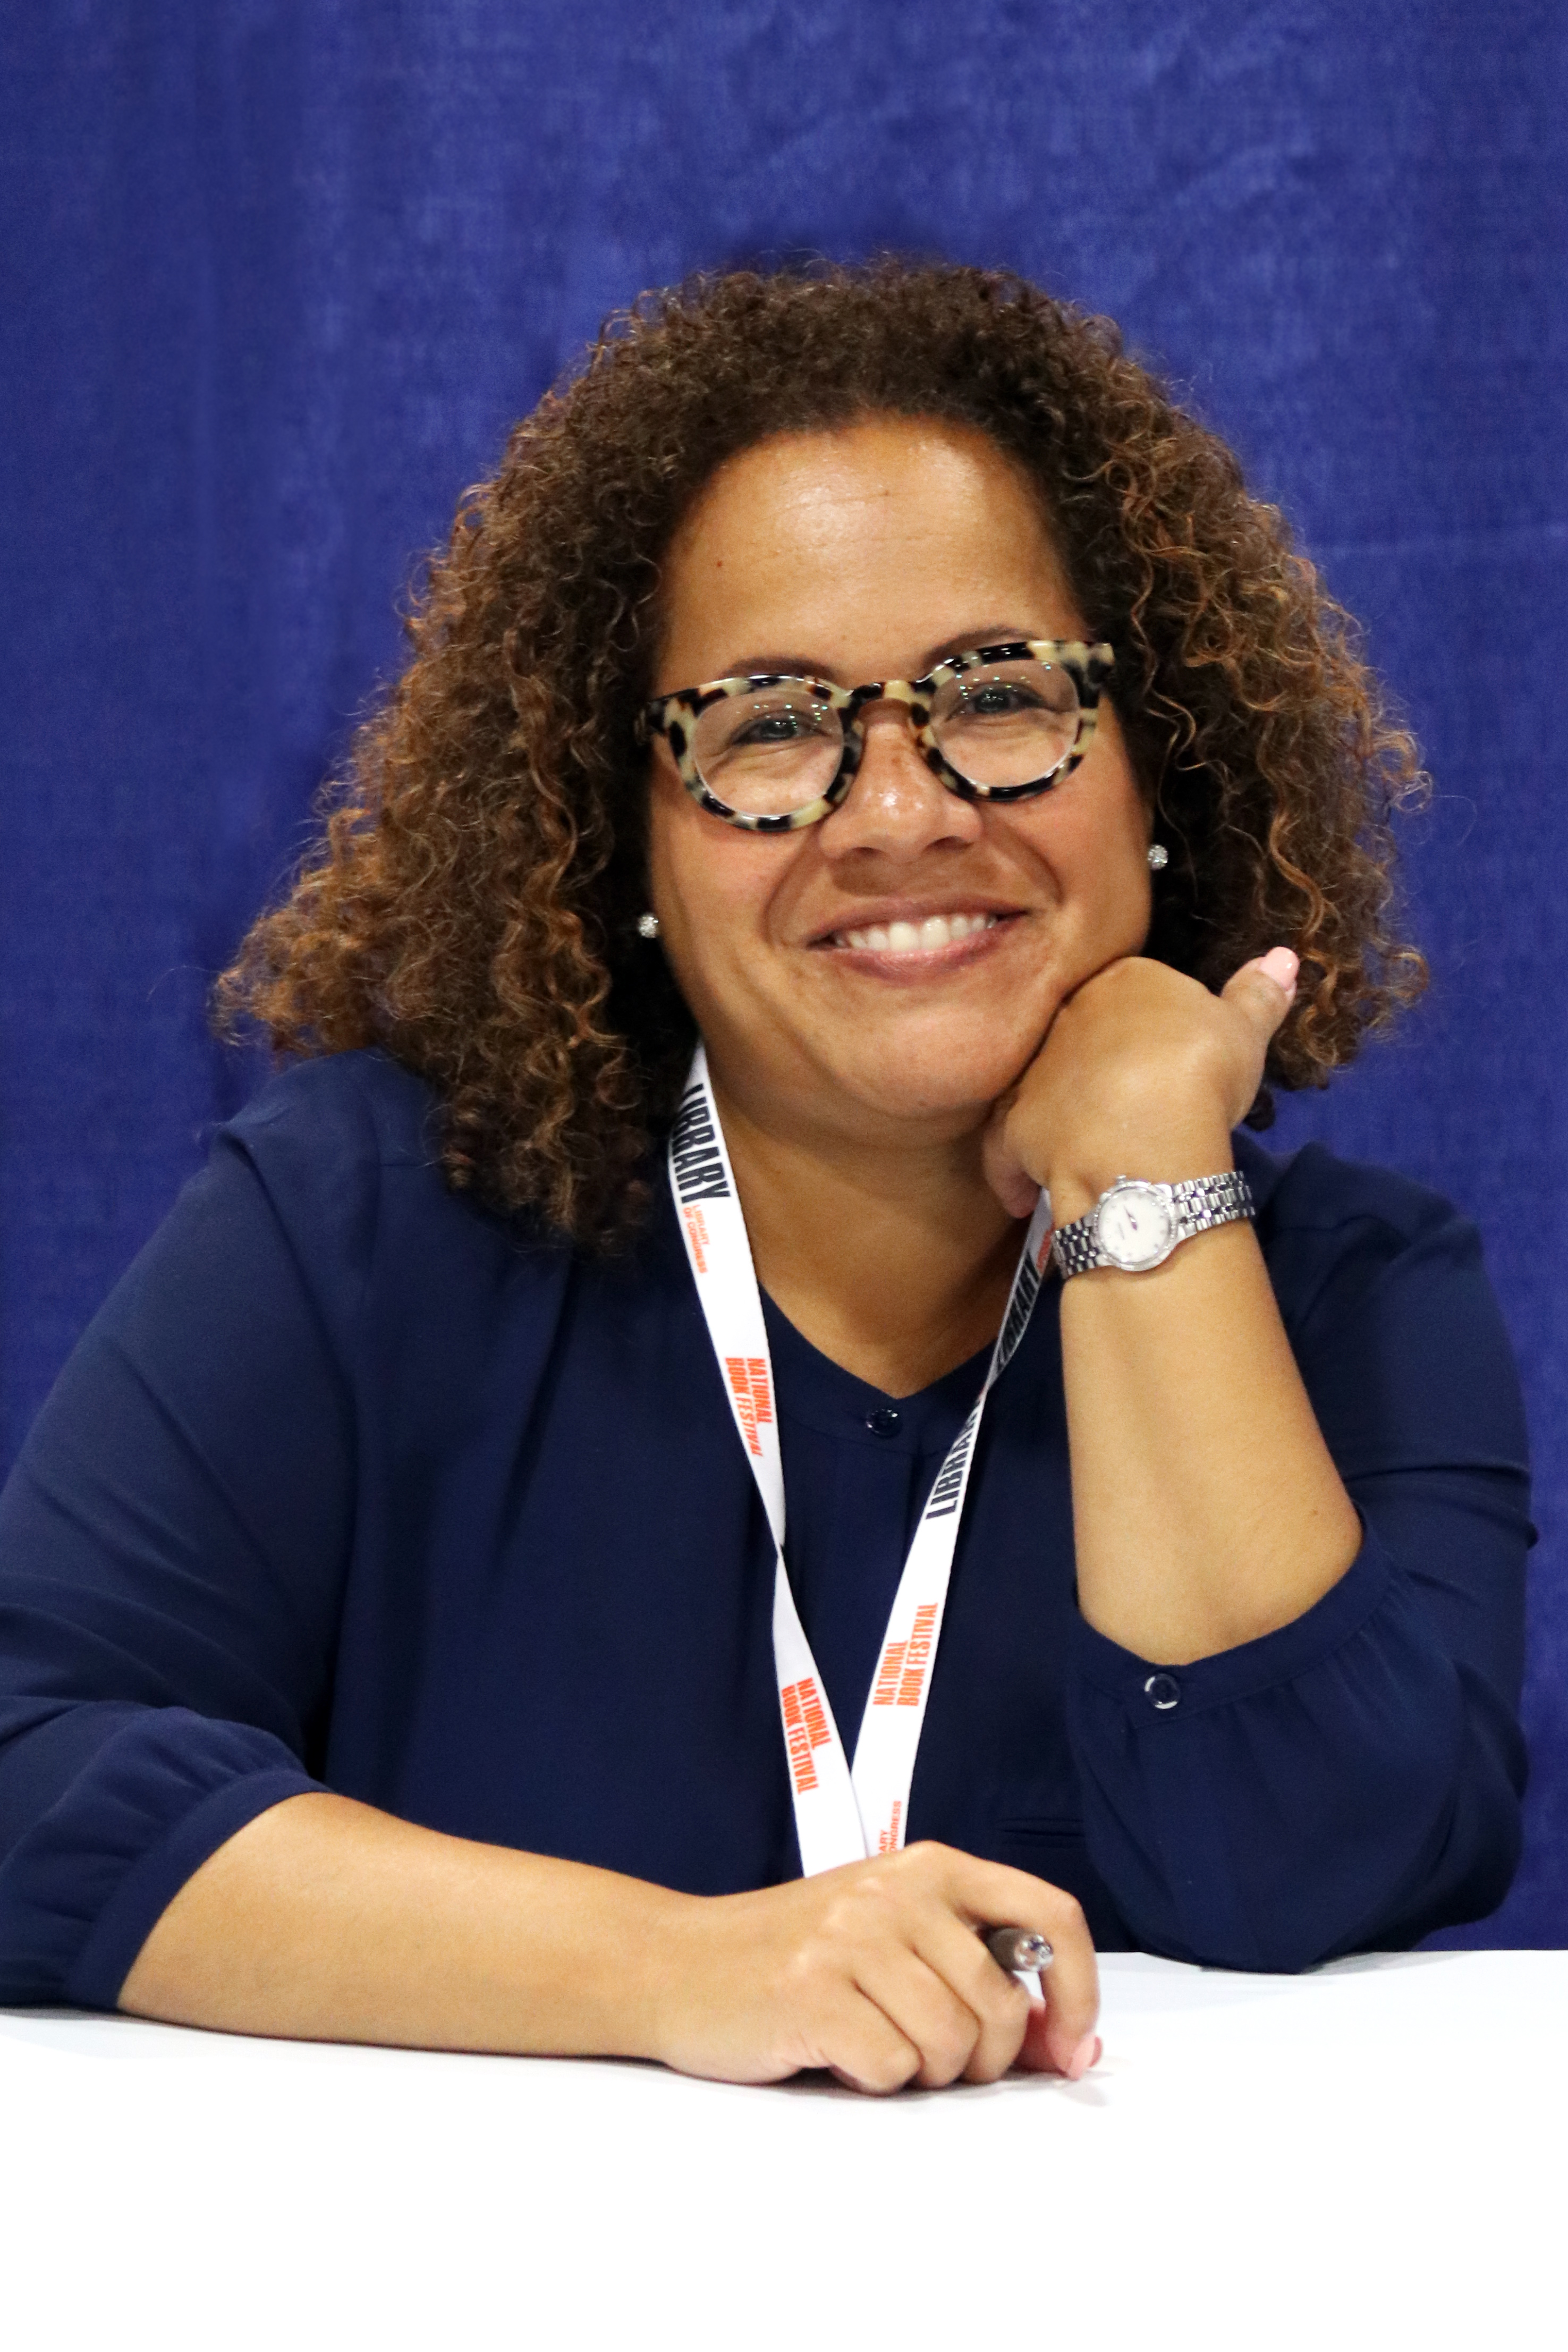 Author at the 2018 U.S. [[National Book Festival]]